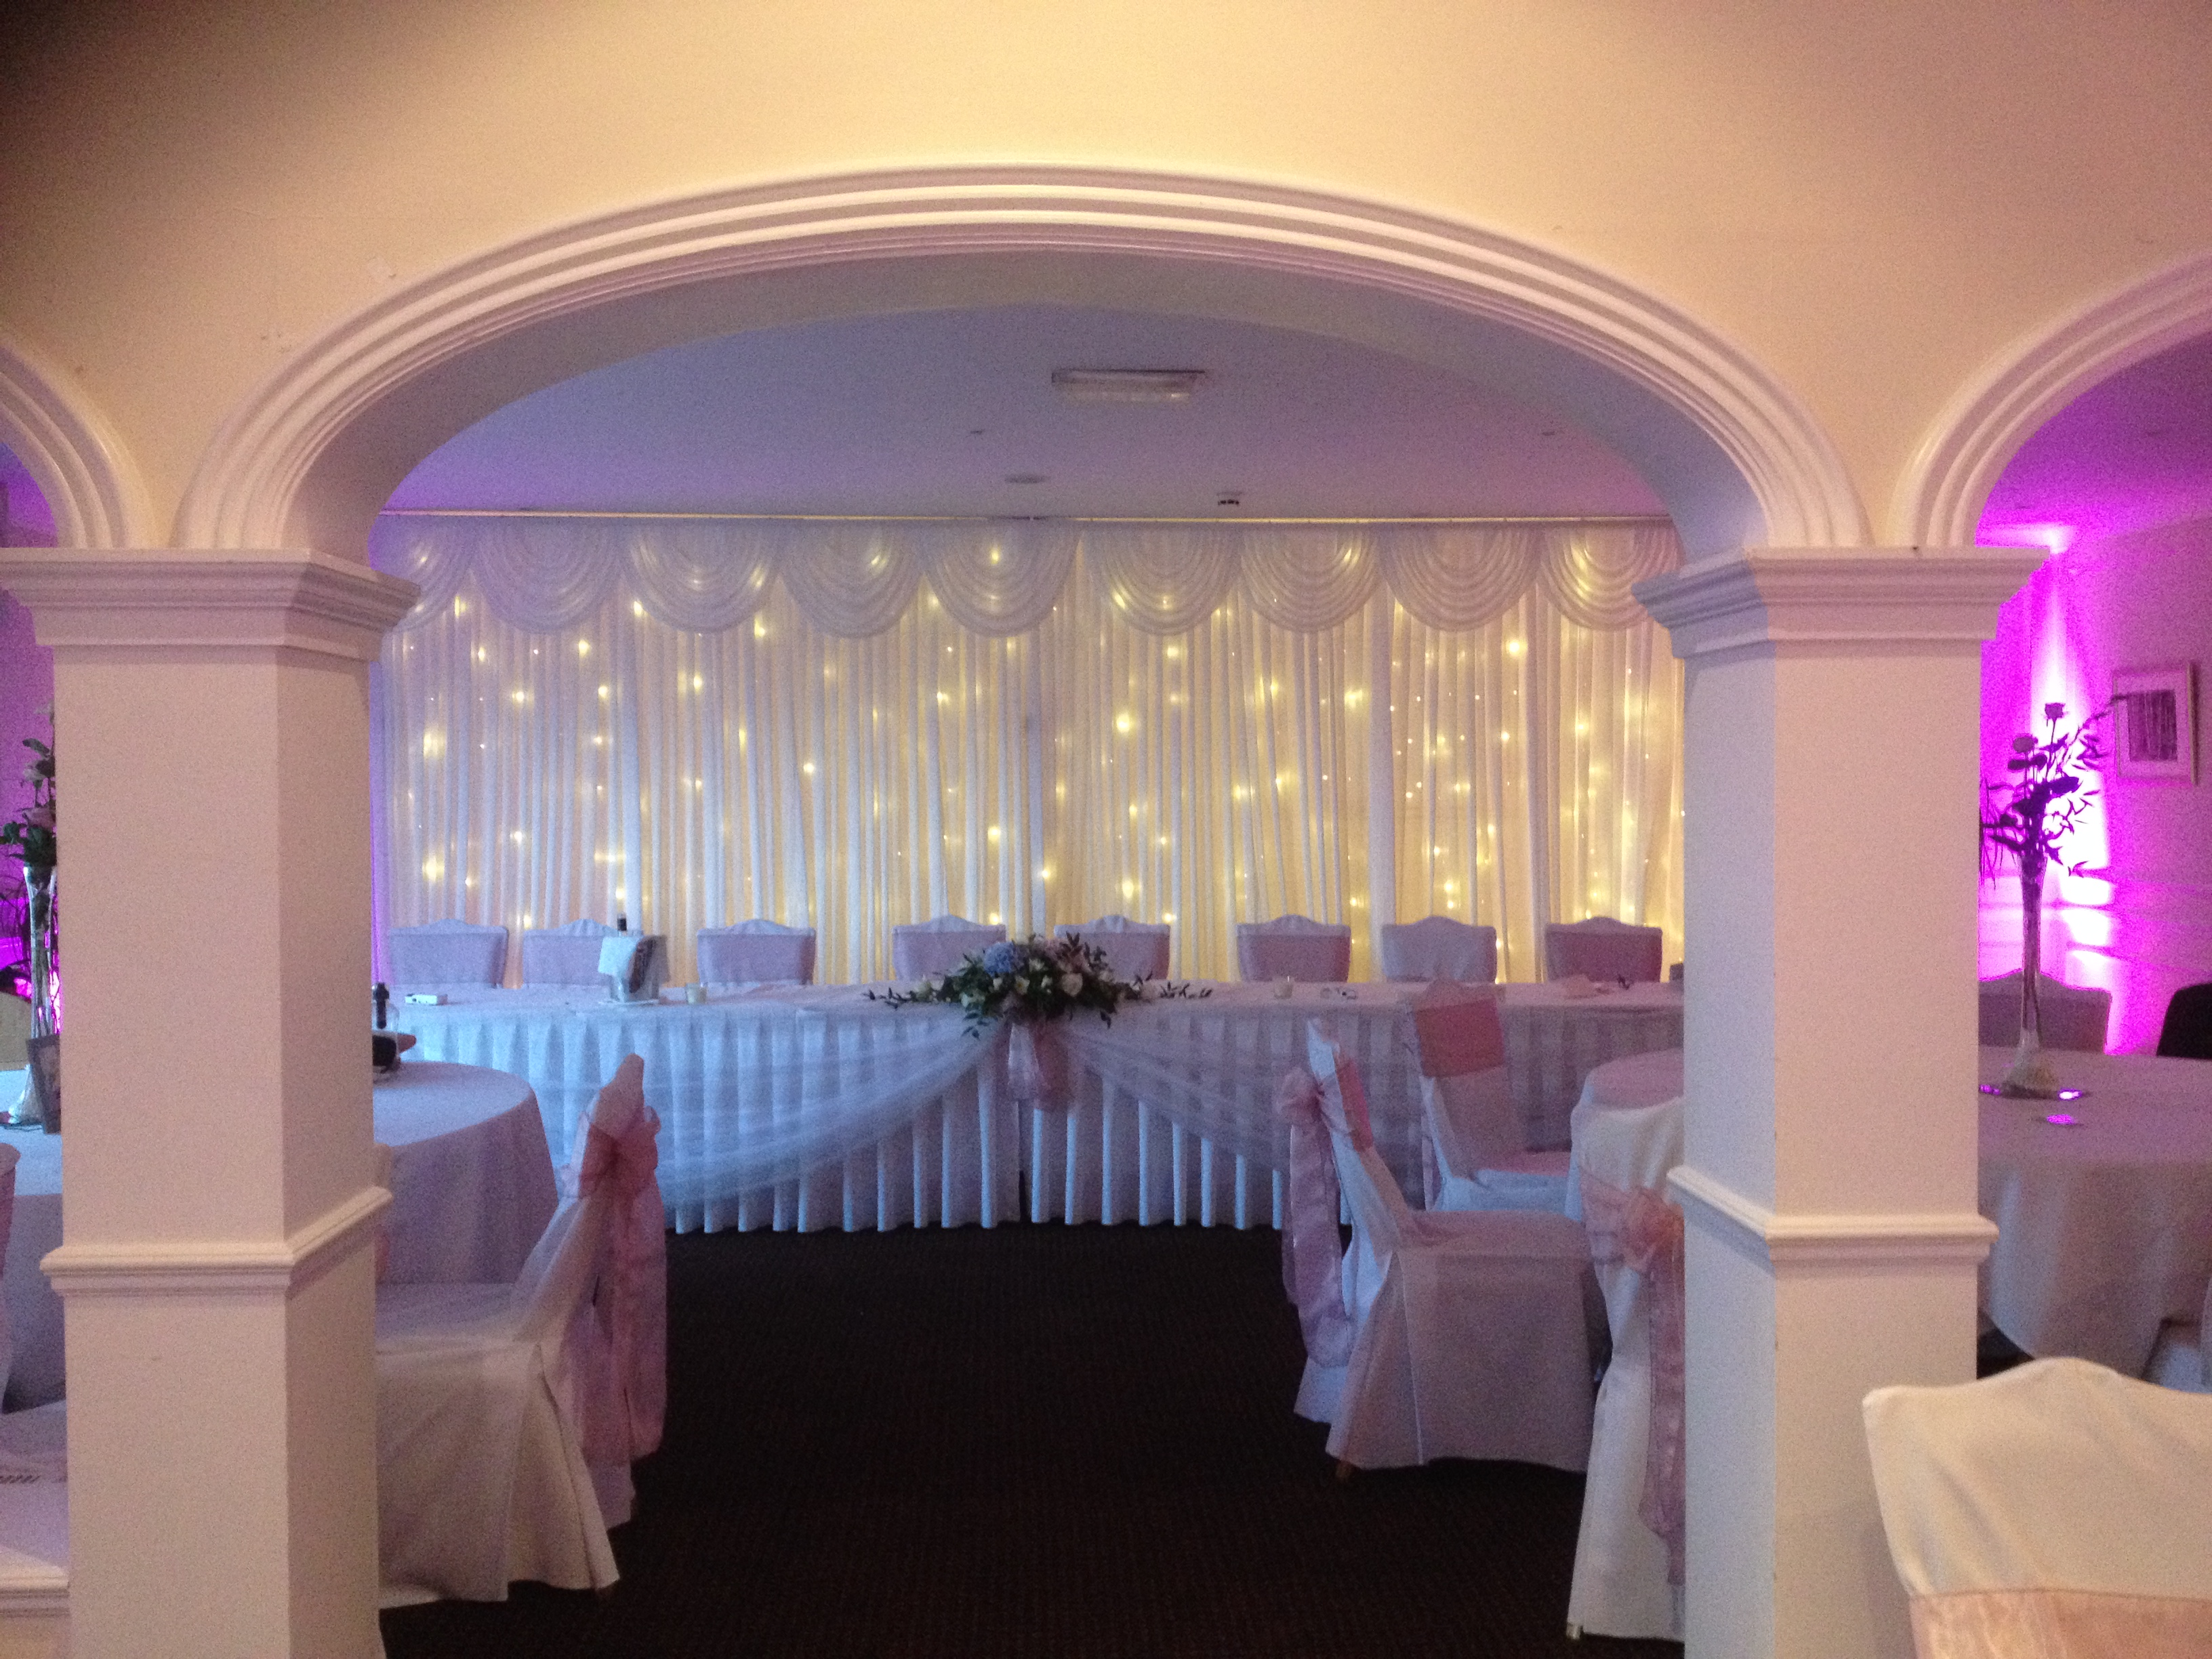 Starlight Wedding Backdrop